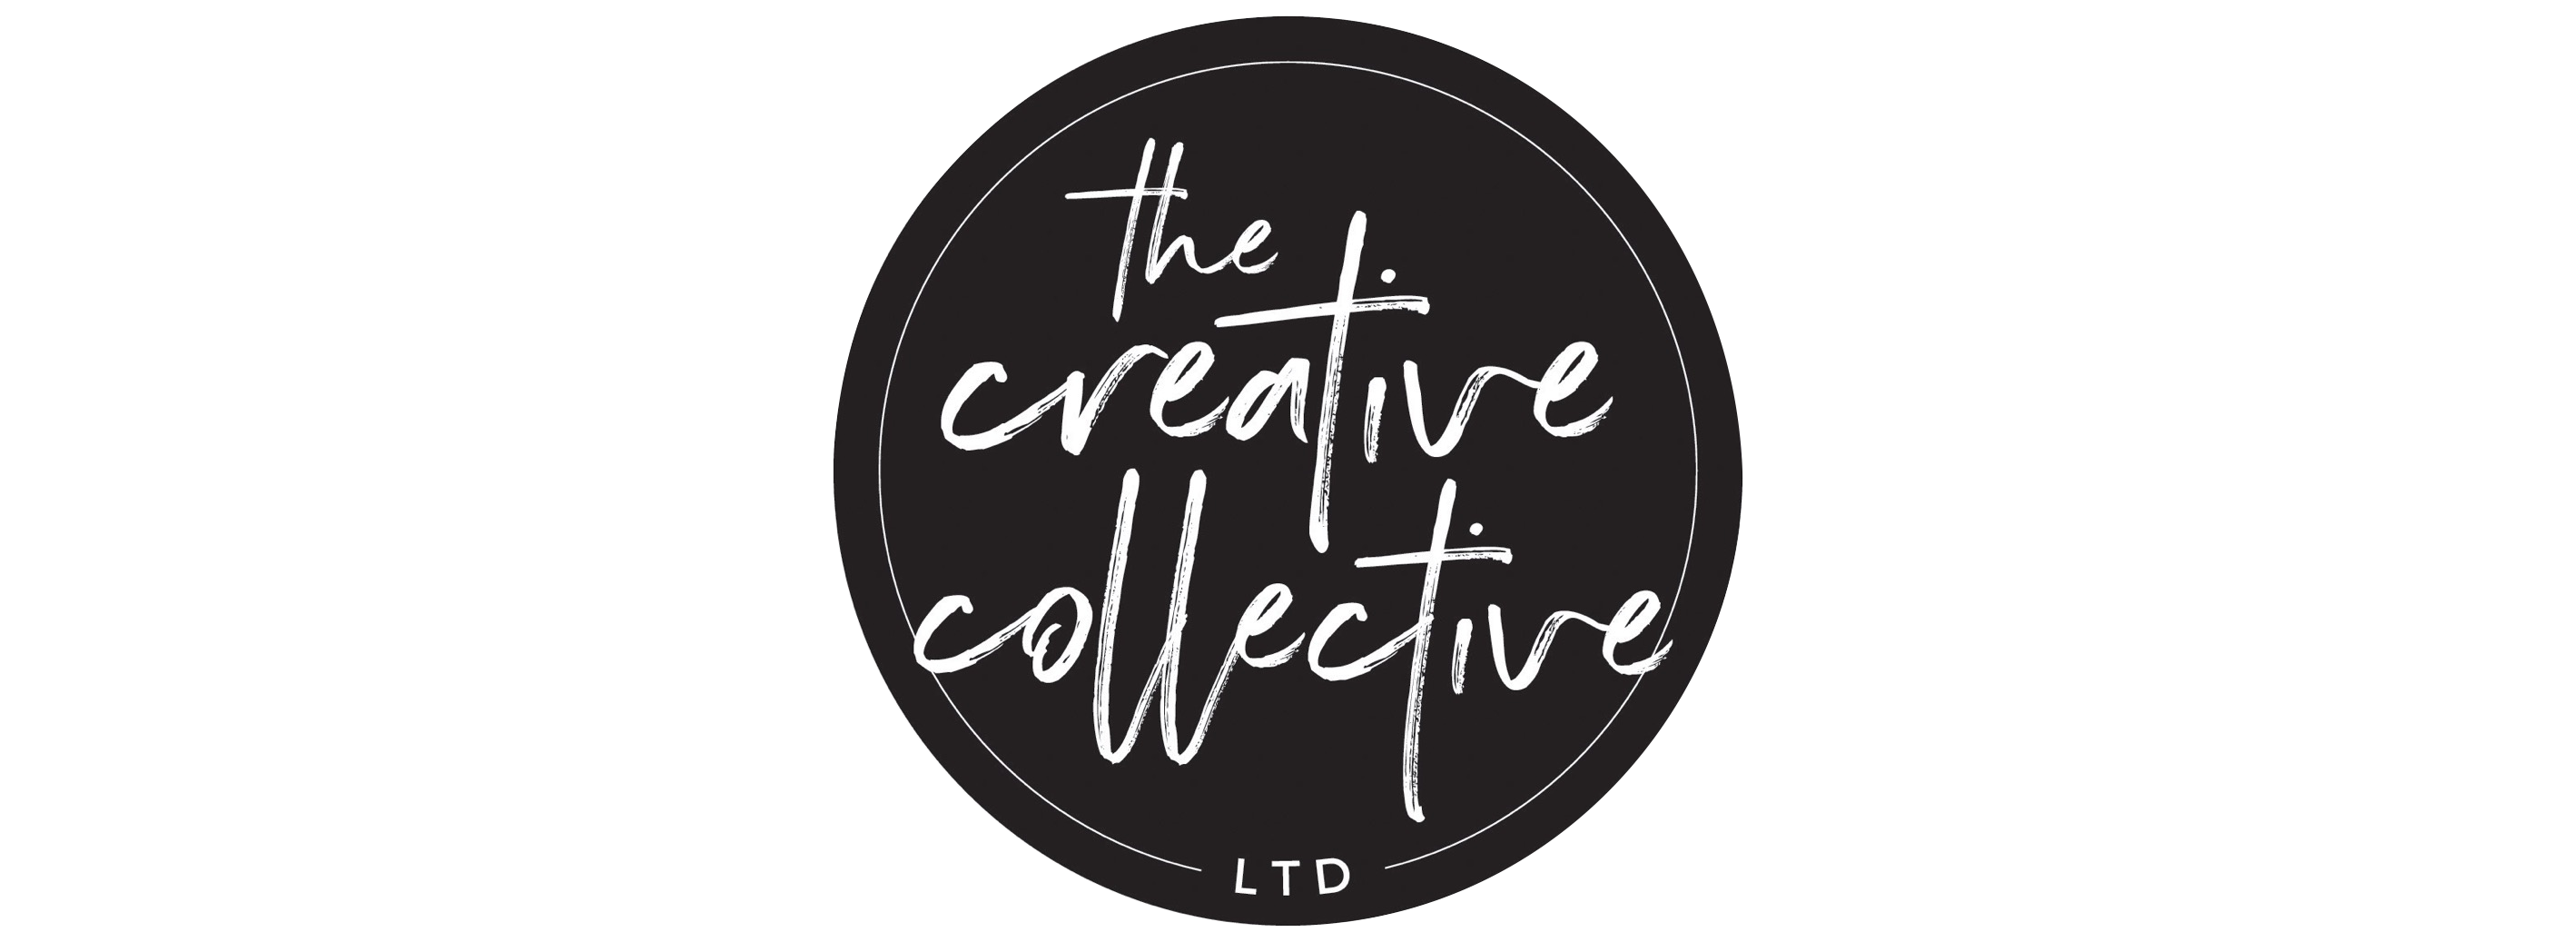 The Creative Collective Ltd logo